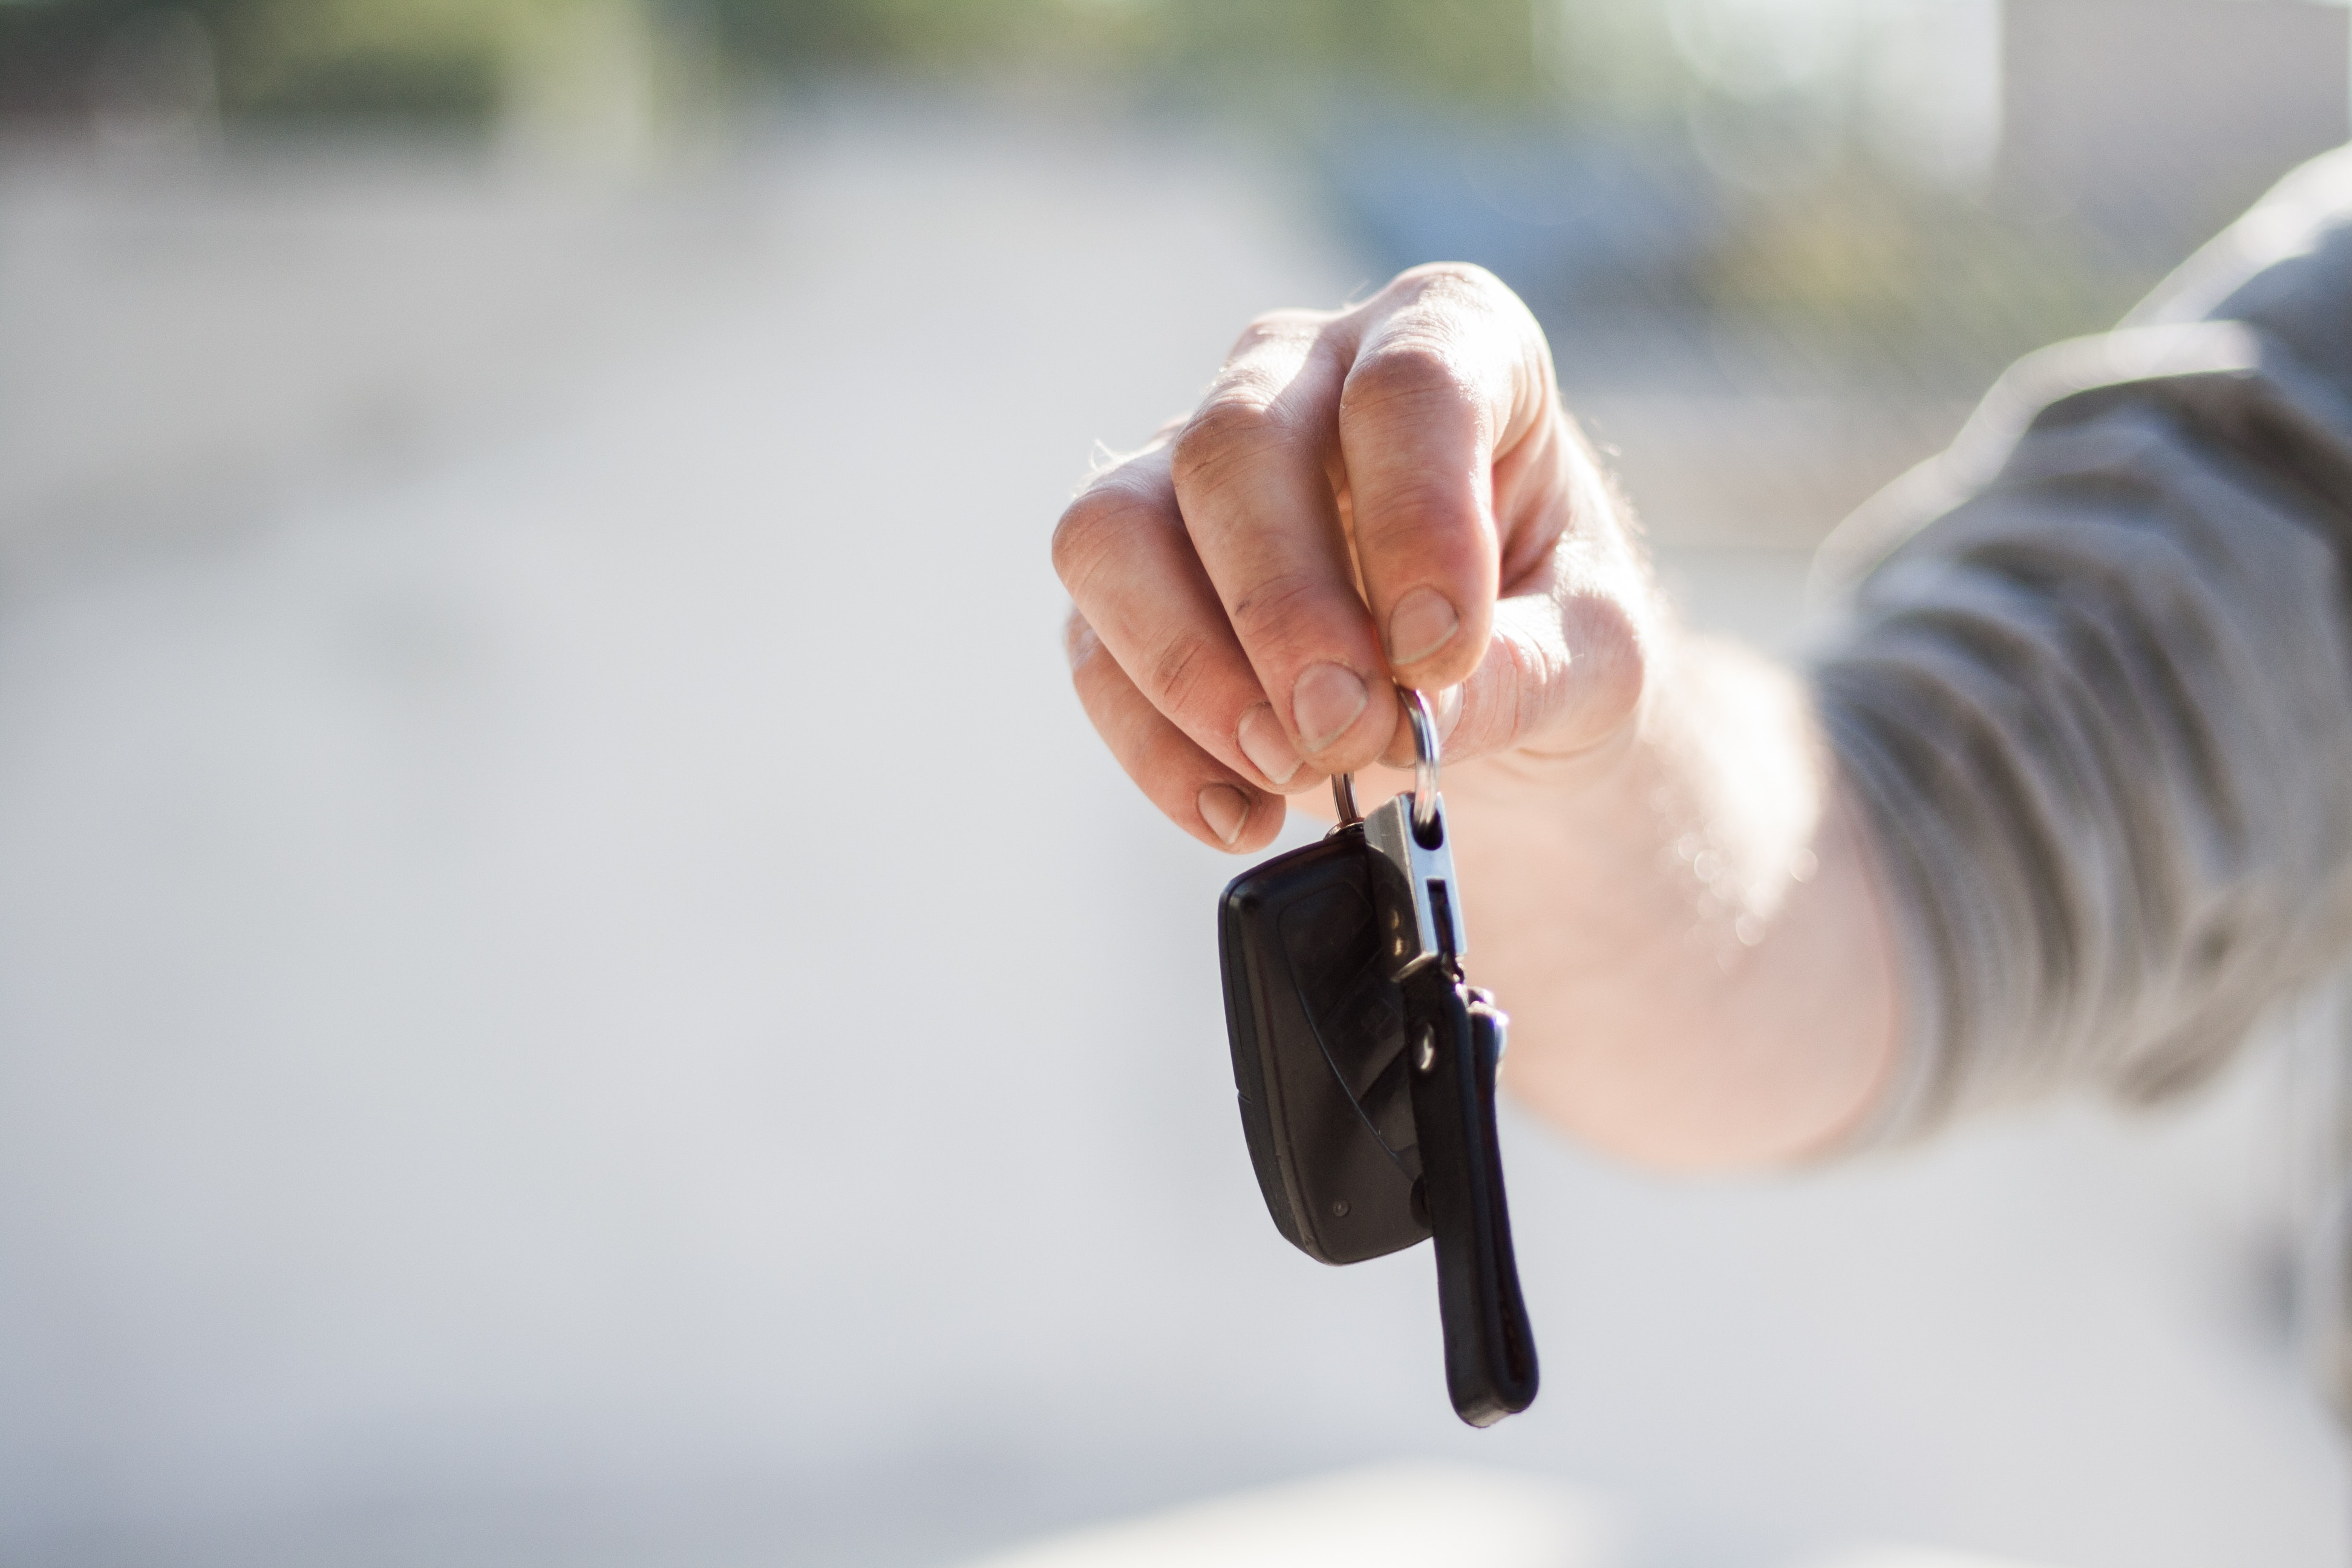 Why The Dealership Lost $400 on Your New Car